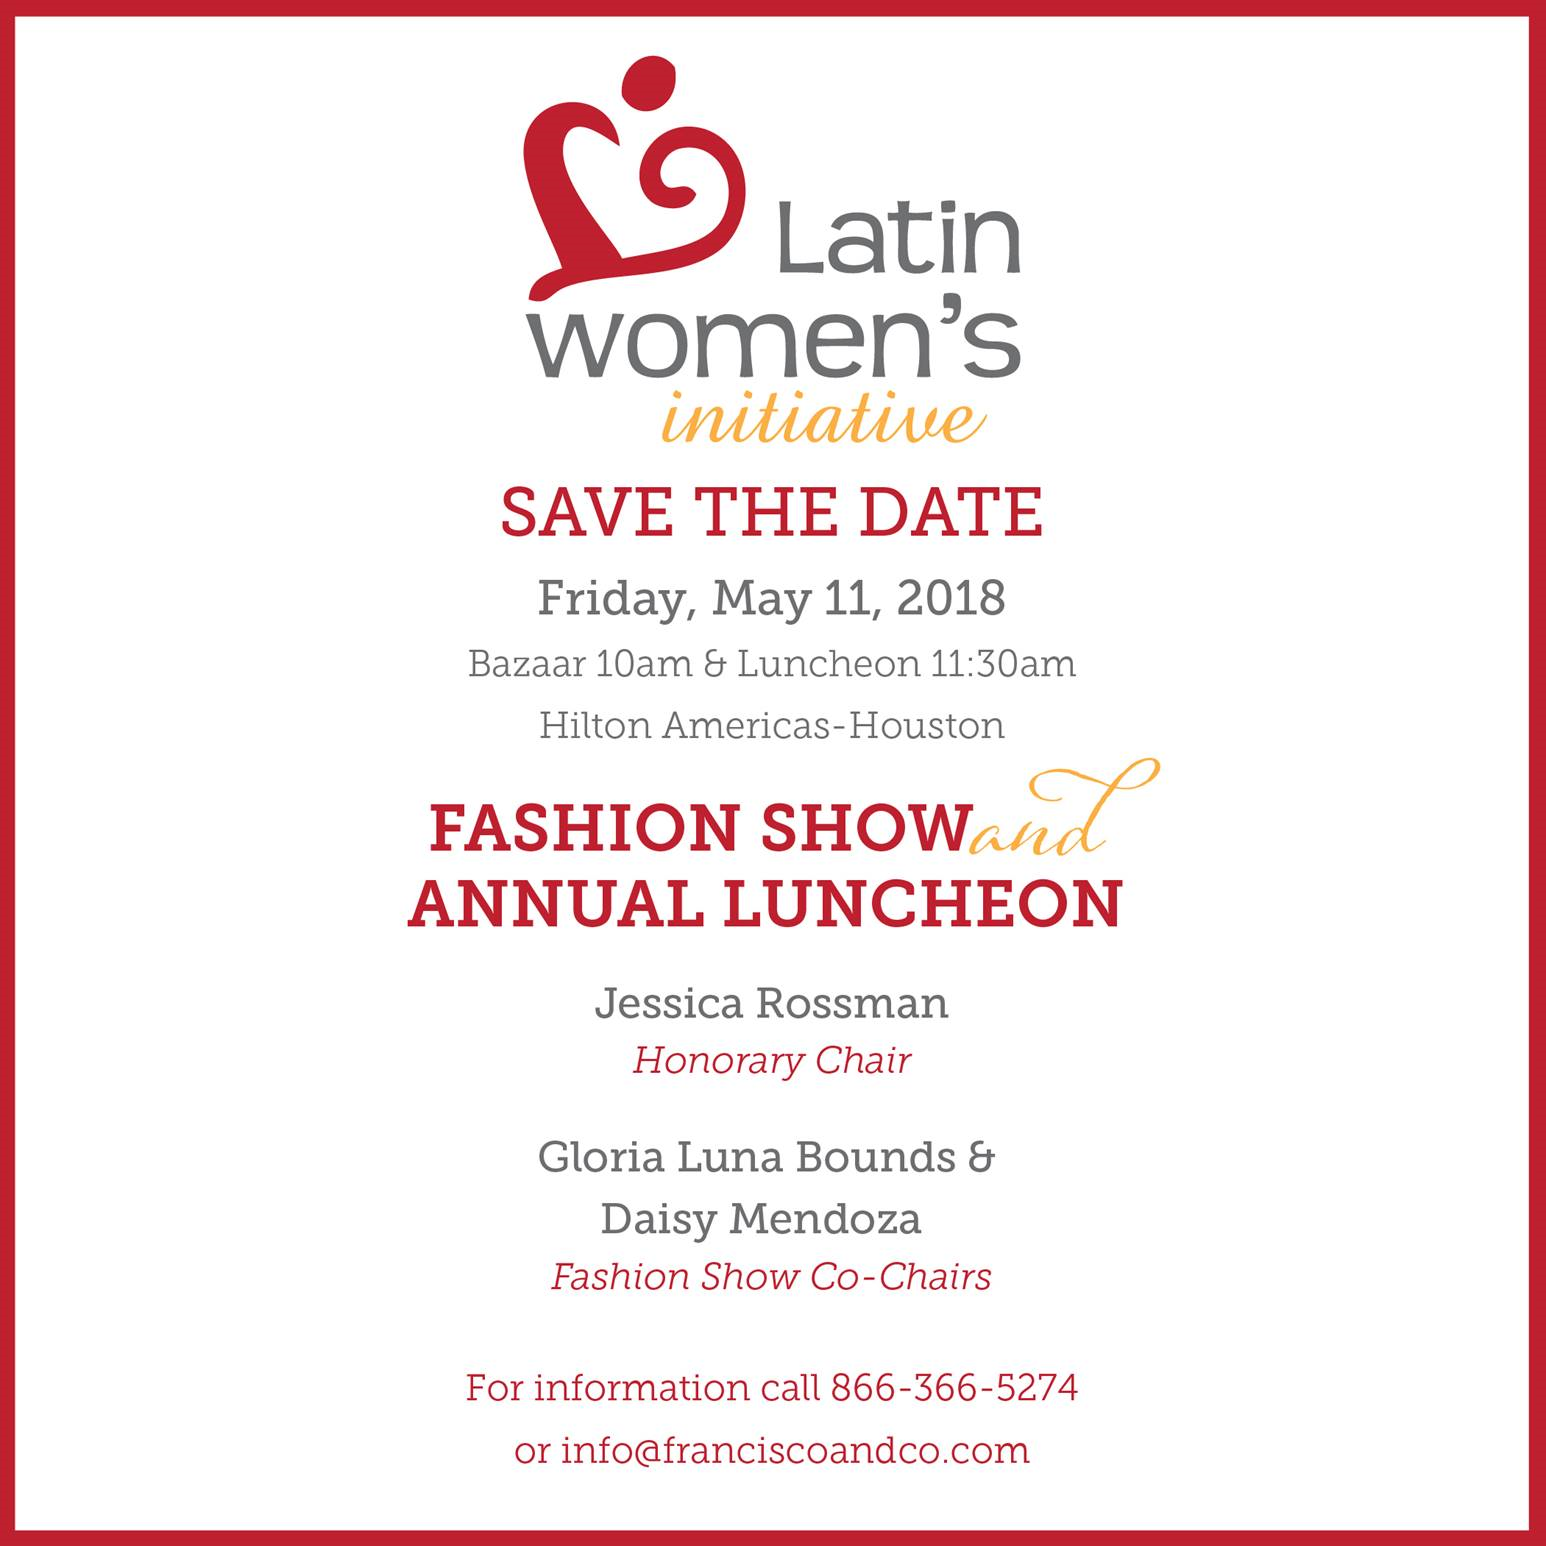 Annual Luncheon and Fashion Show 2018 | Latin Women\'s Initiative